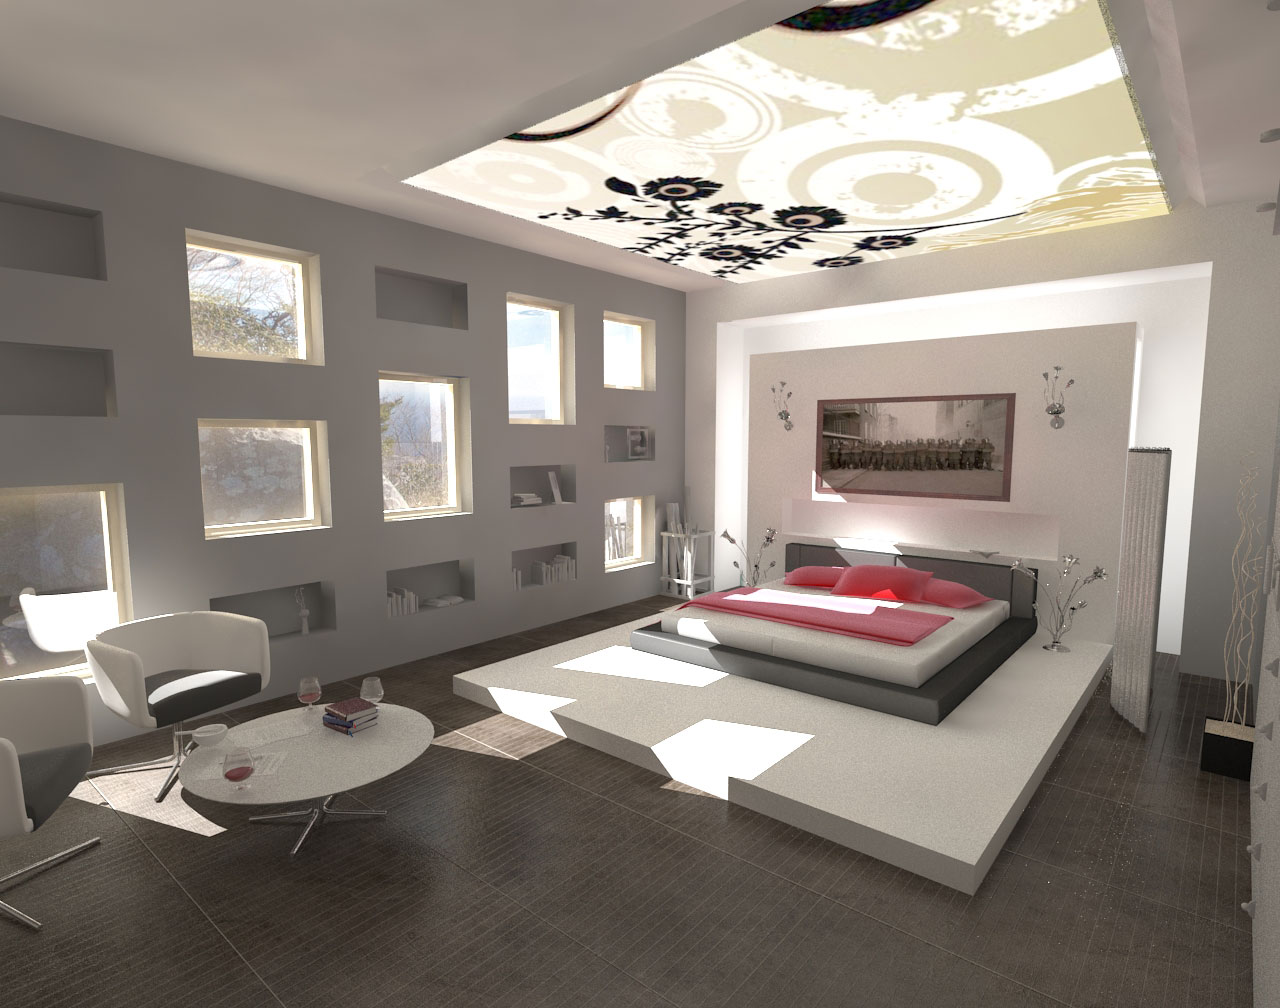 Decorations minimalist design modern bedroom interior for Modern bedroom interior